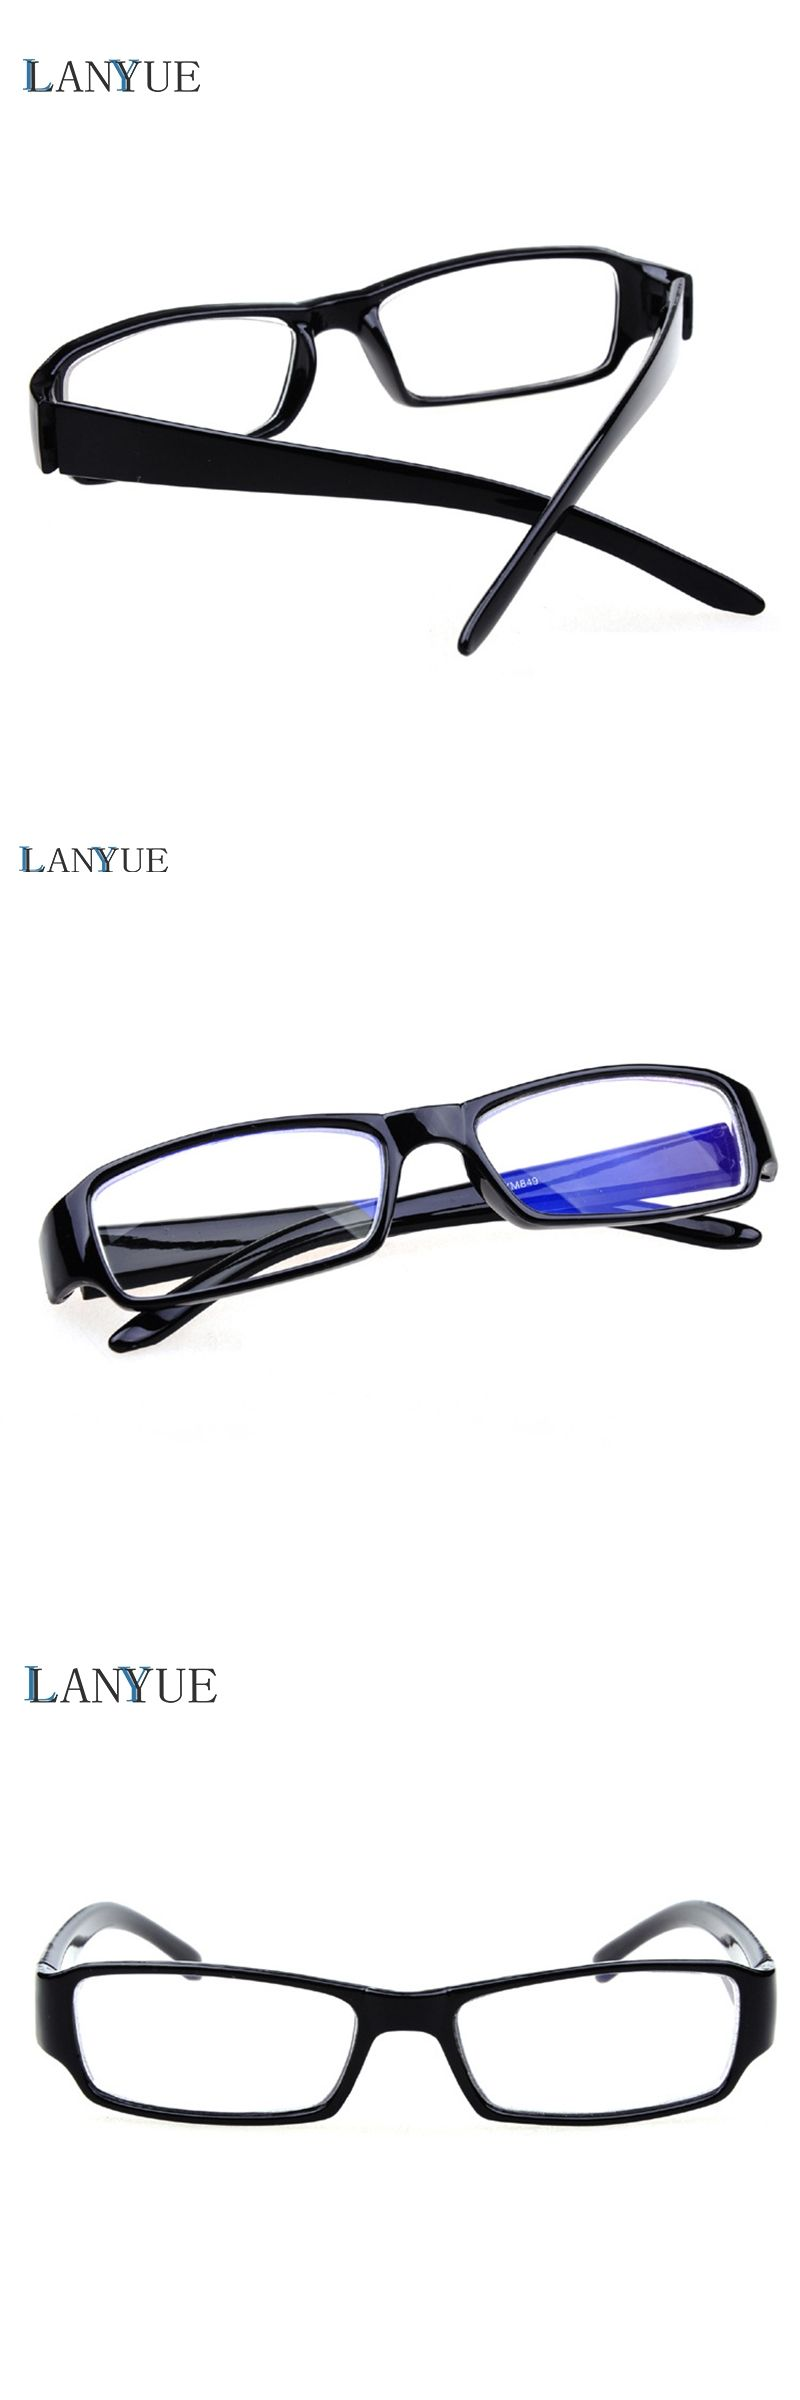 f7296c685b9 simple Myopia nearsighted Glasses Frame With Degree Lenses Diopter Eyeglasses  optical eyewear -100 to -